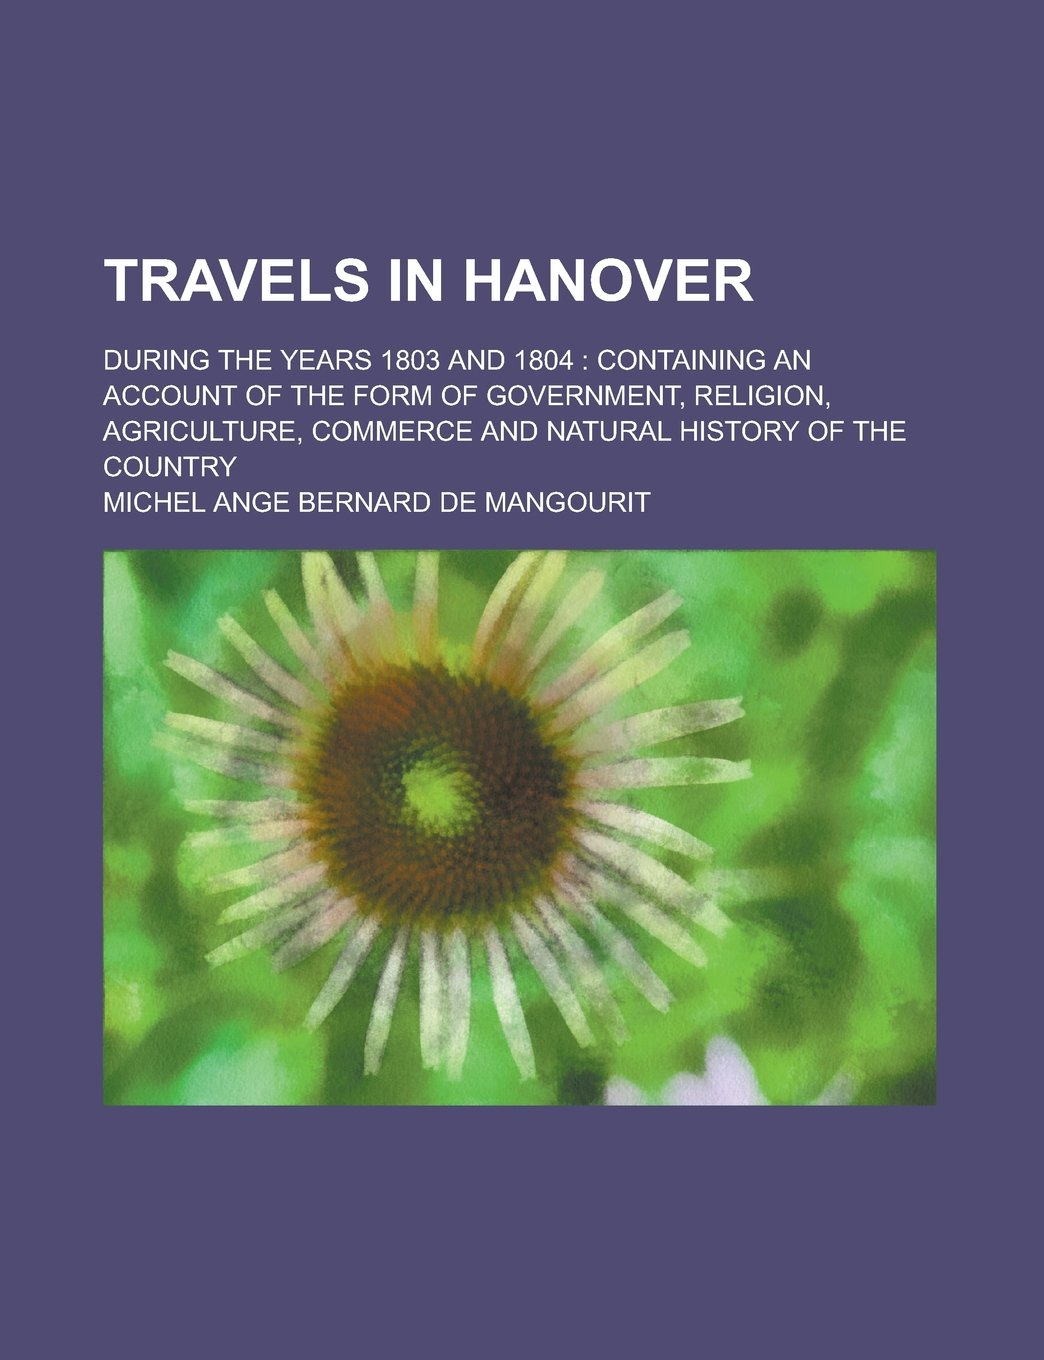 Read Online Travels in Hanover; During the Years 1803 and 1804: Containing an Account of the Form of Government, Religion, Agriculture, Commerce and Natural History of the Country ebook